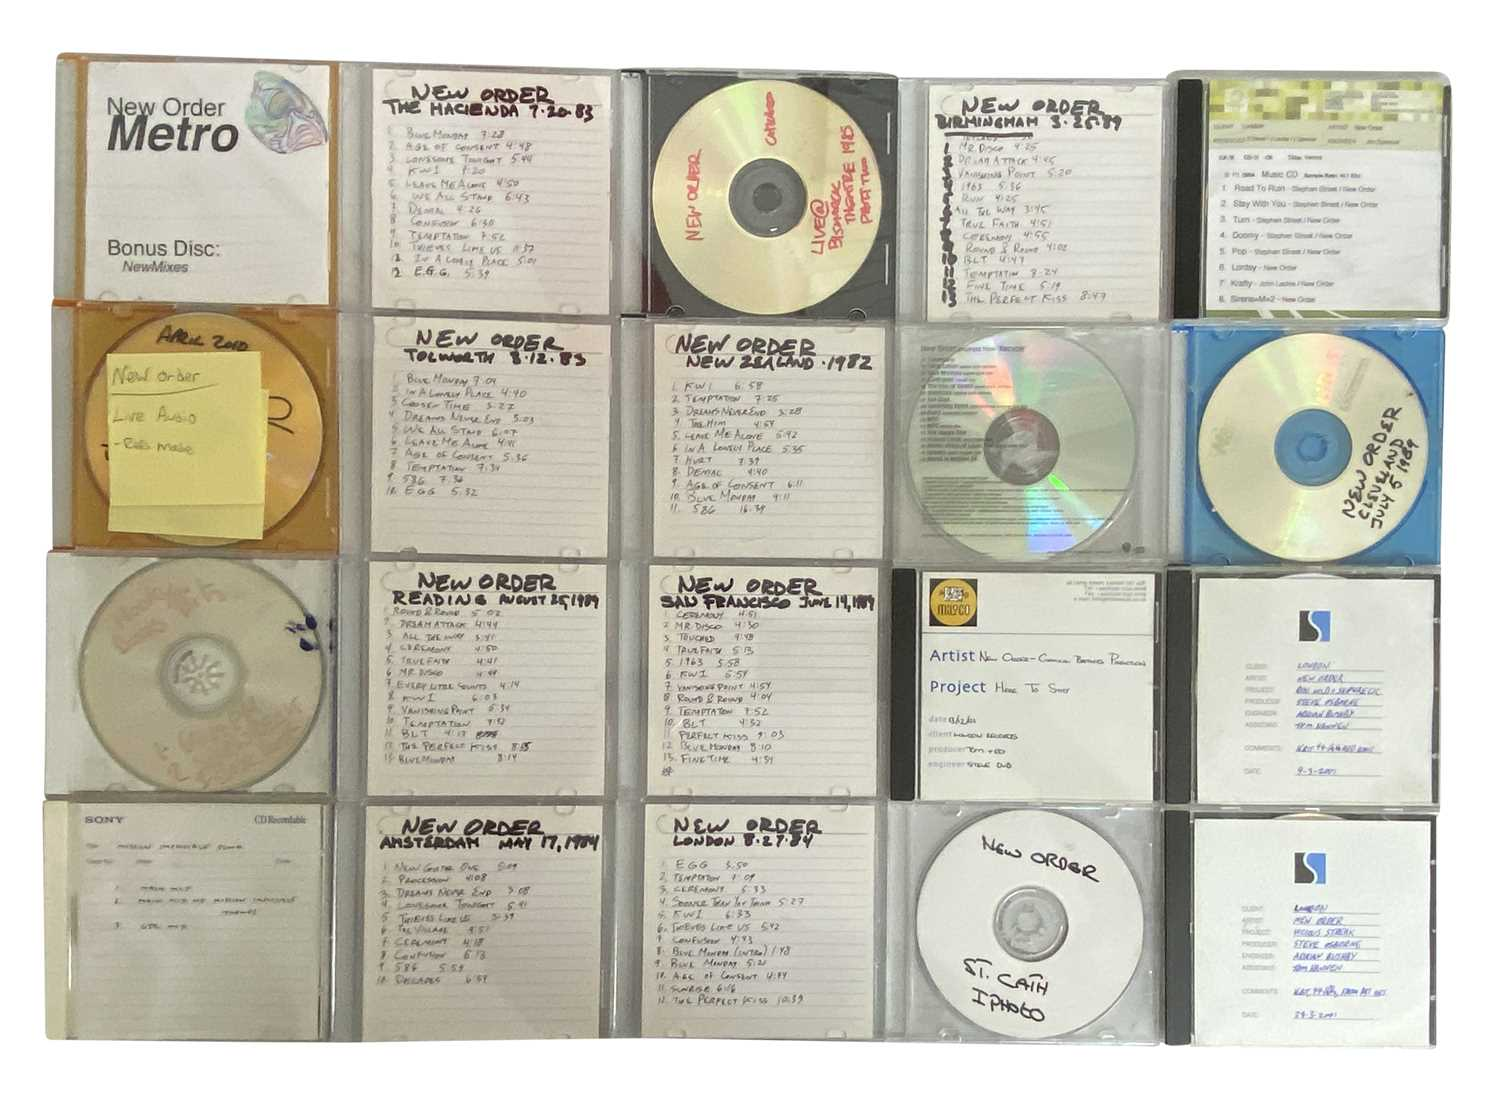 NEW ORDER CD-R AND LIVE RECORDINGS ARCHIVE 2 - Image 5 of 6